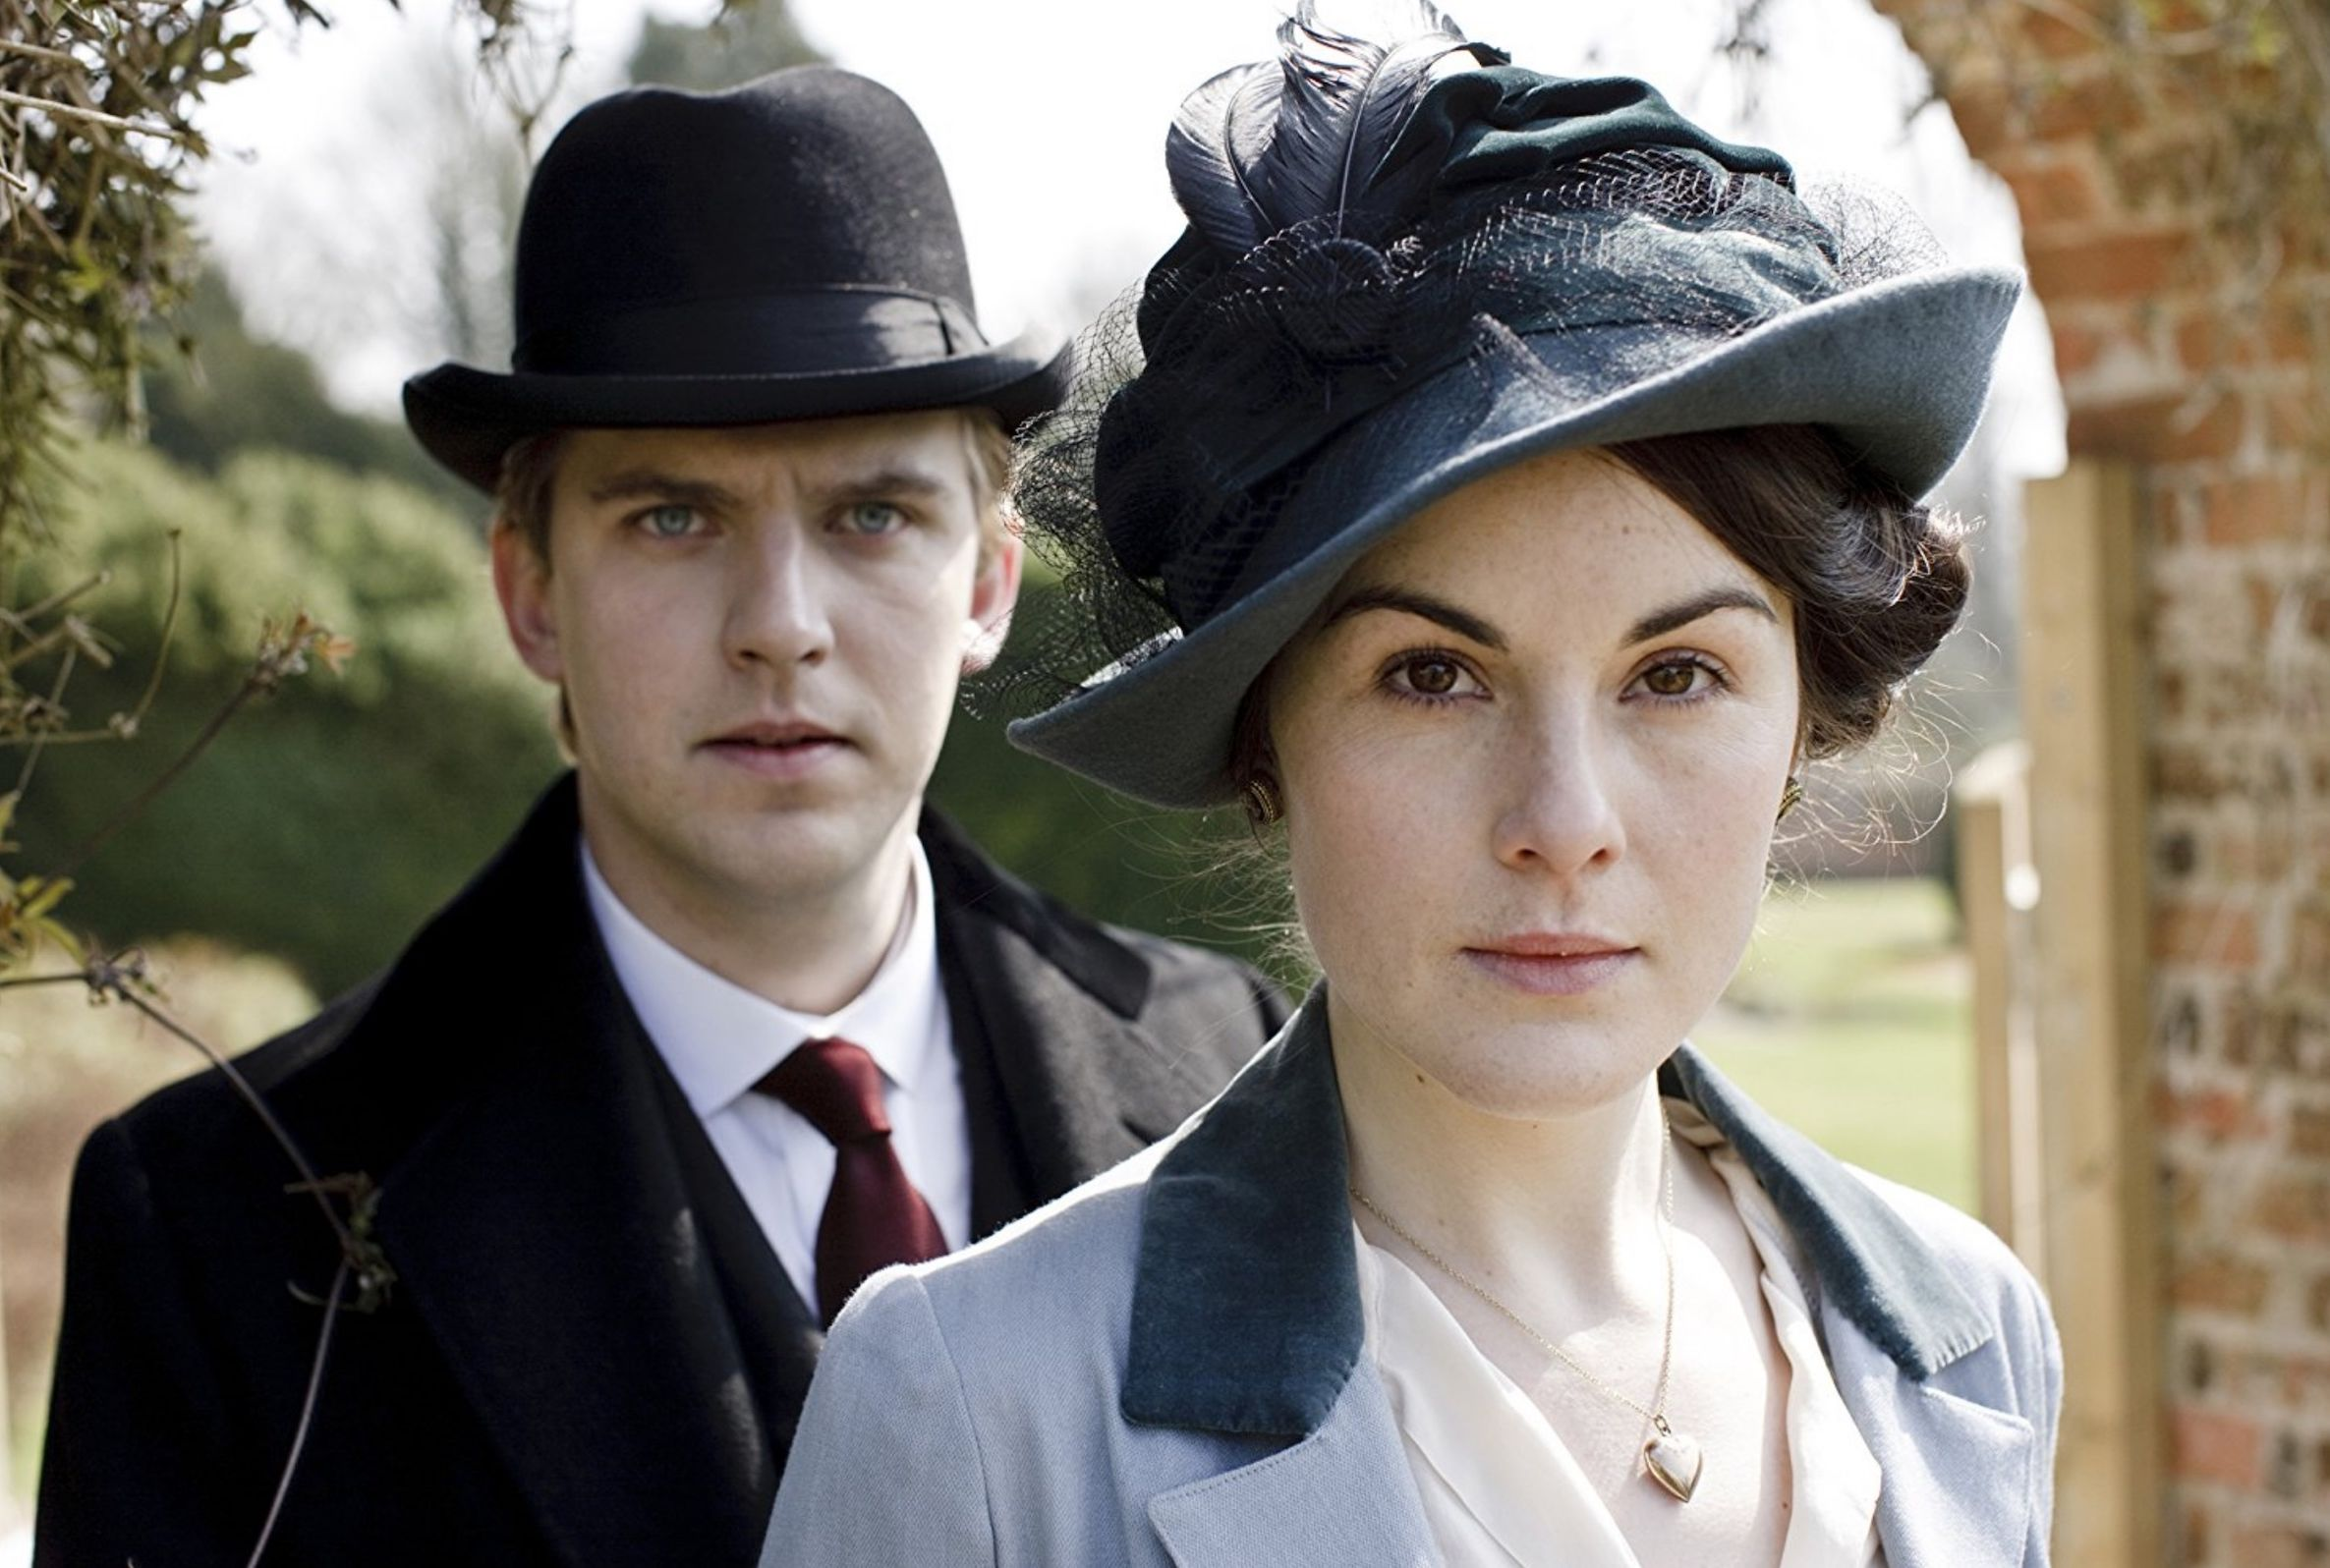 15 Proper Facts About Downton Abbey | Mental Floss